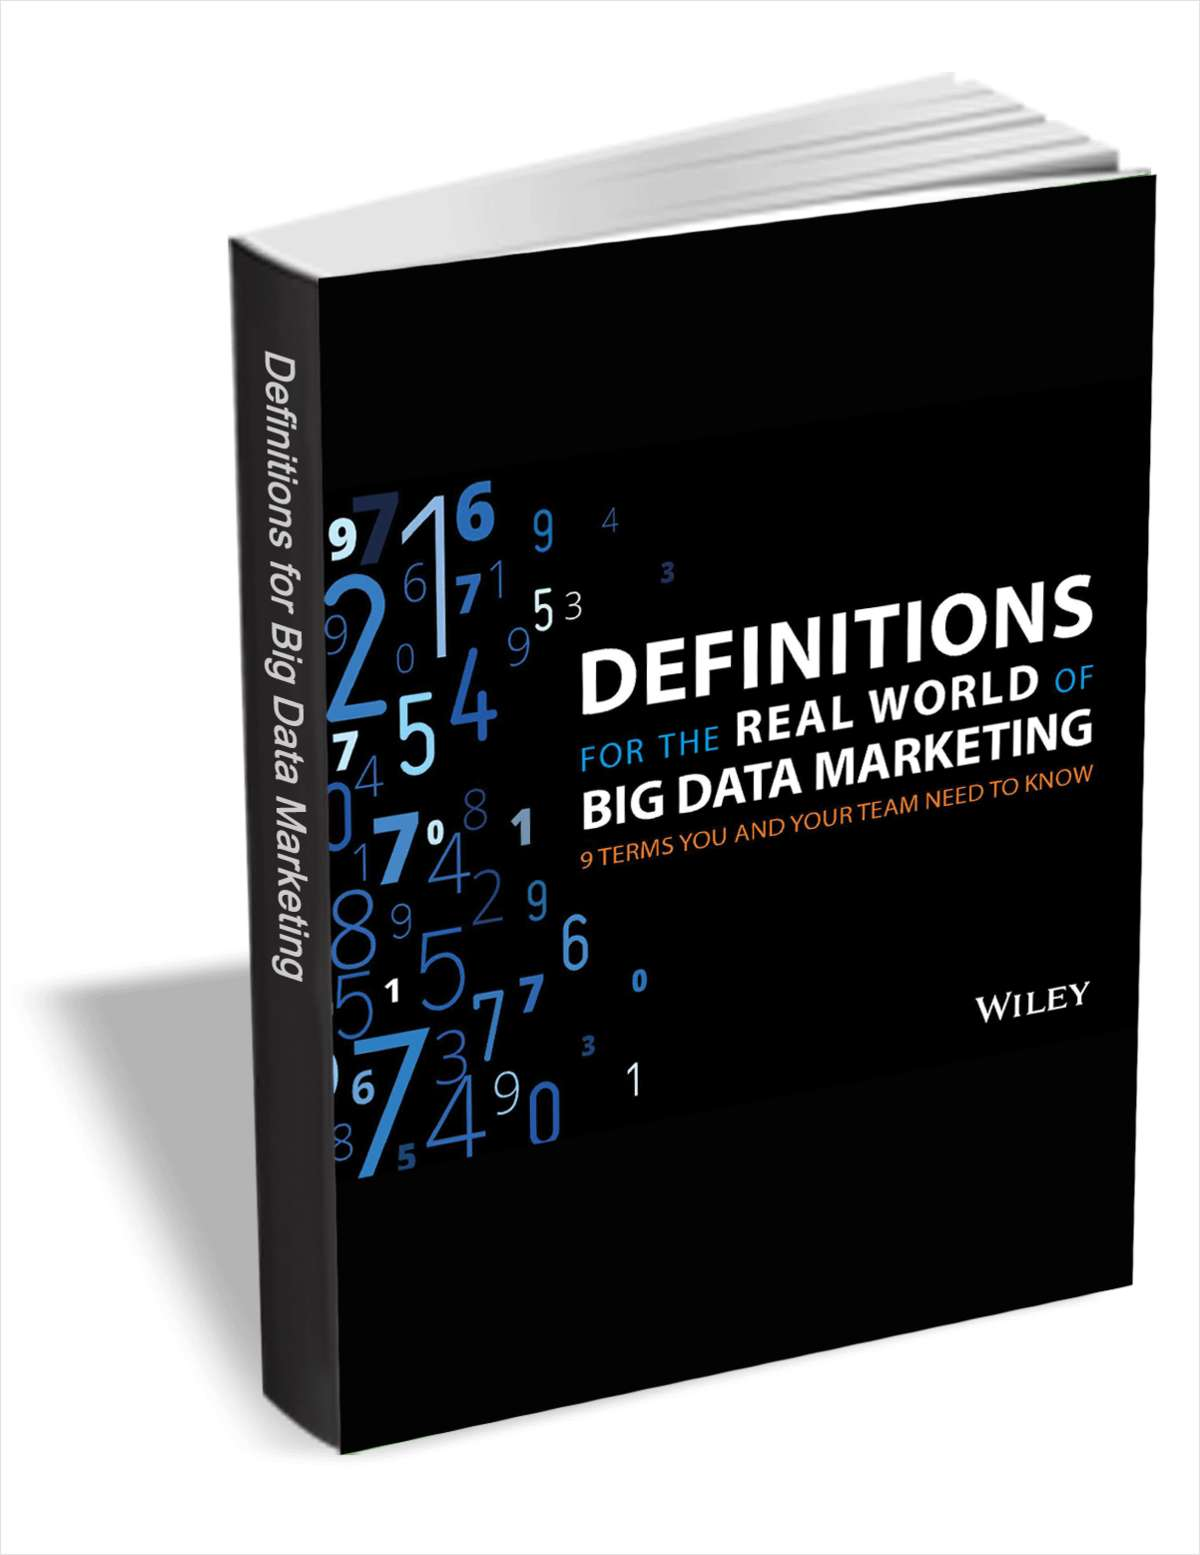 Definitions for the Real World of Big Data Marketing